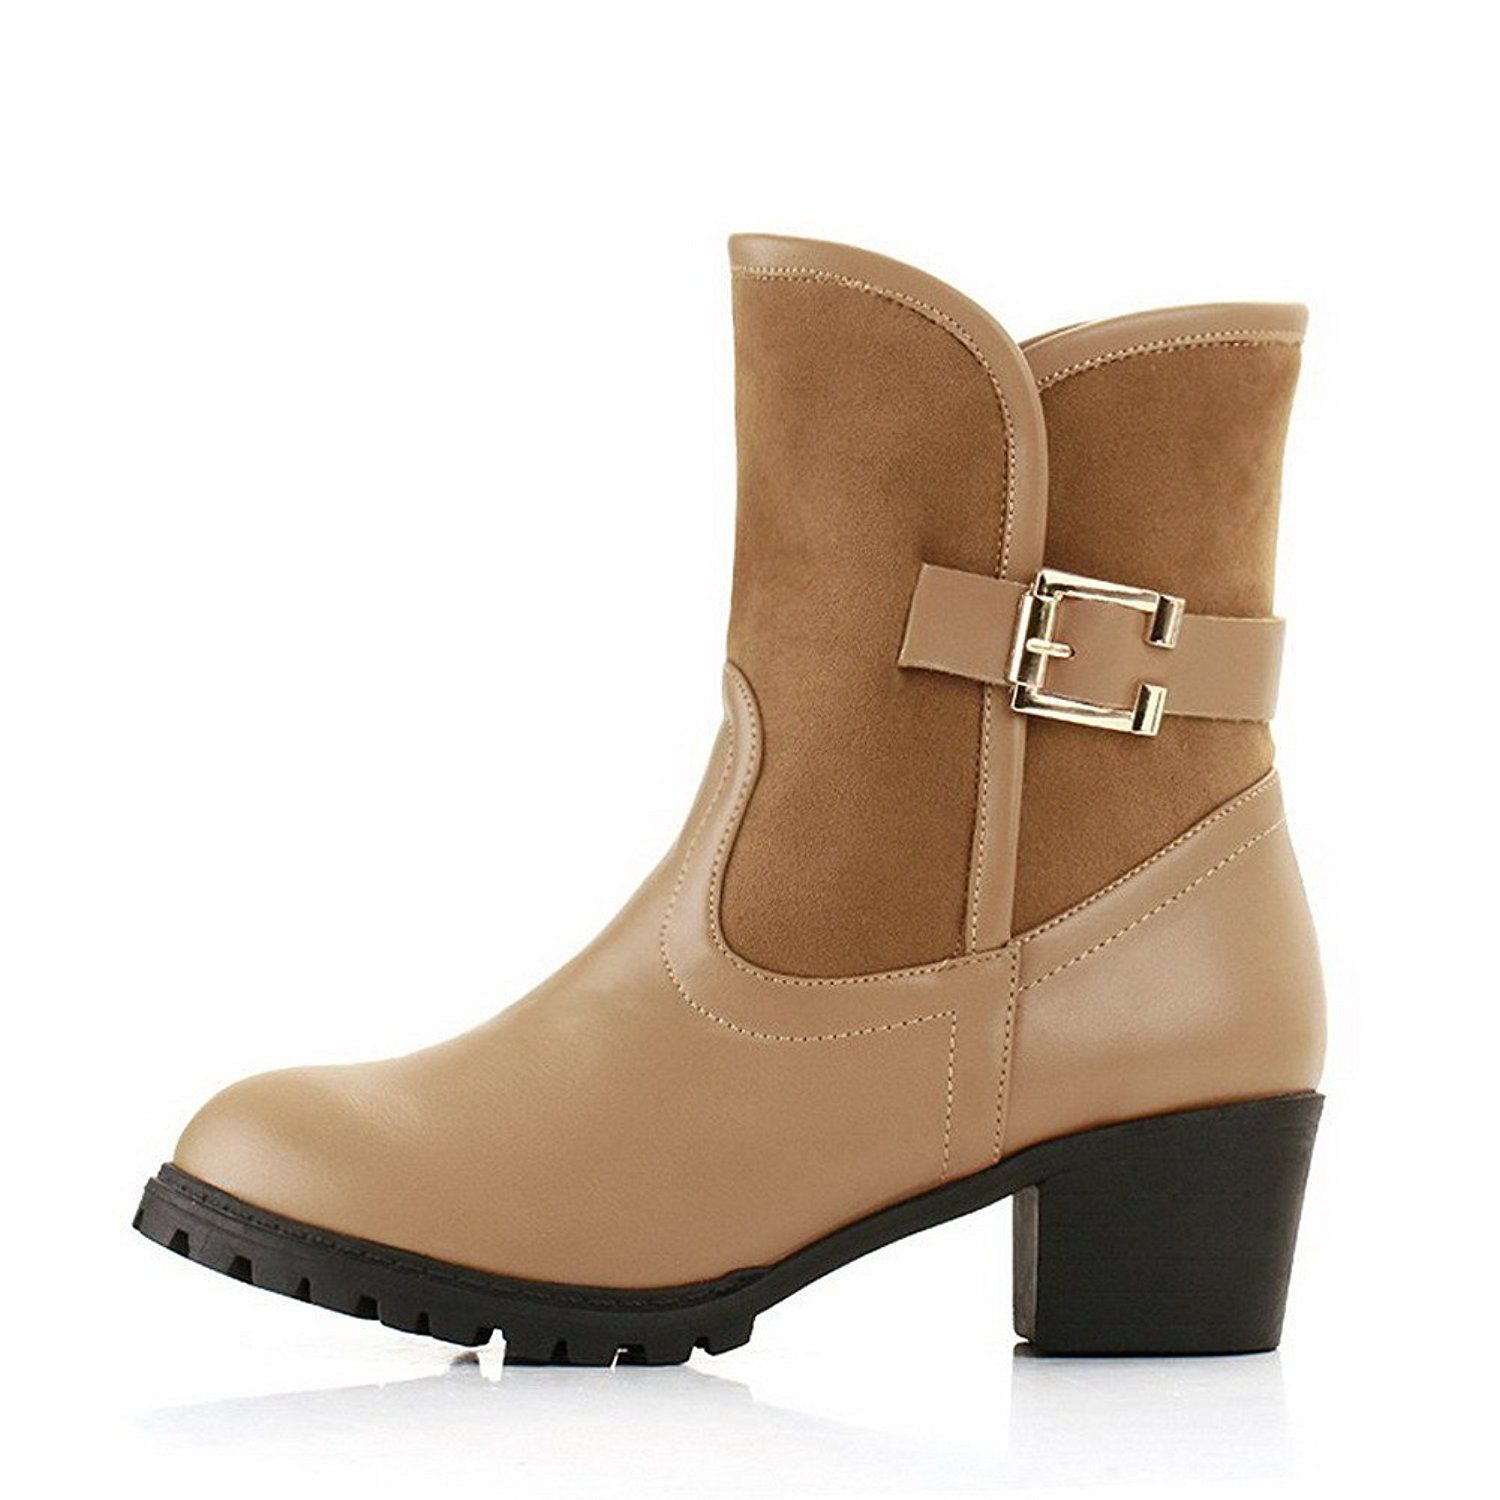 Amoonyfashion Womens Round Closed Toe Kitten Heels Assorted Colors Pu Boots With Buckle This Is An Amazon Affi Kitten Heel Boots Boots Womens Knee High Boots